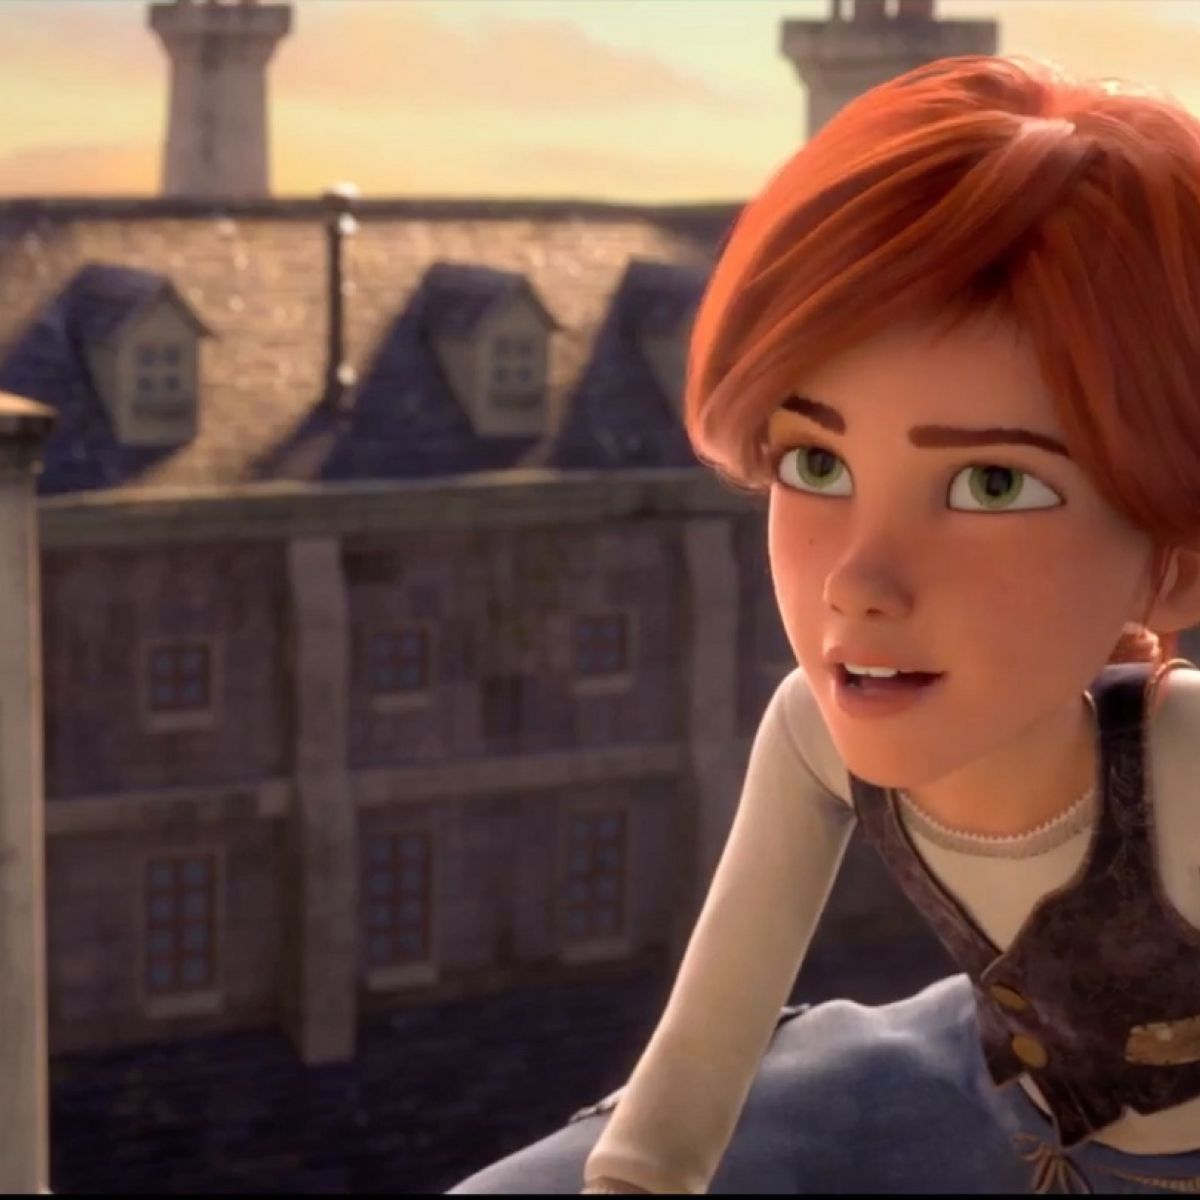 Ballerina review: an animated tale that dances along lightly